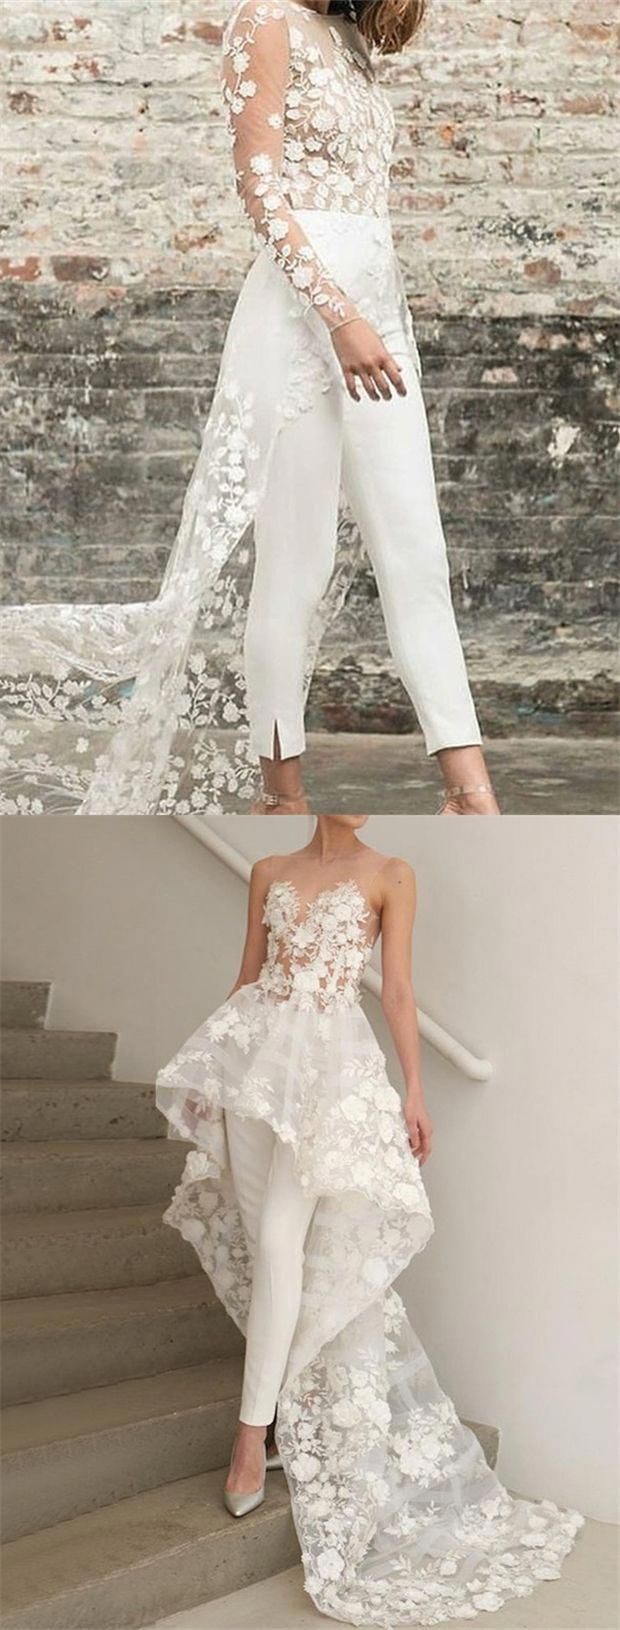 Design White Long Wedding Jumpsuit With Appliques Country Long Sleeves Wedding Dresses For Br Wedding Dress Jumpsuit Wedding Party Dress Guest Wedding Jumpsuit [ 1630 x 620 Pixel ]